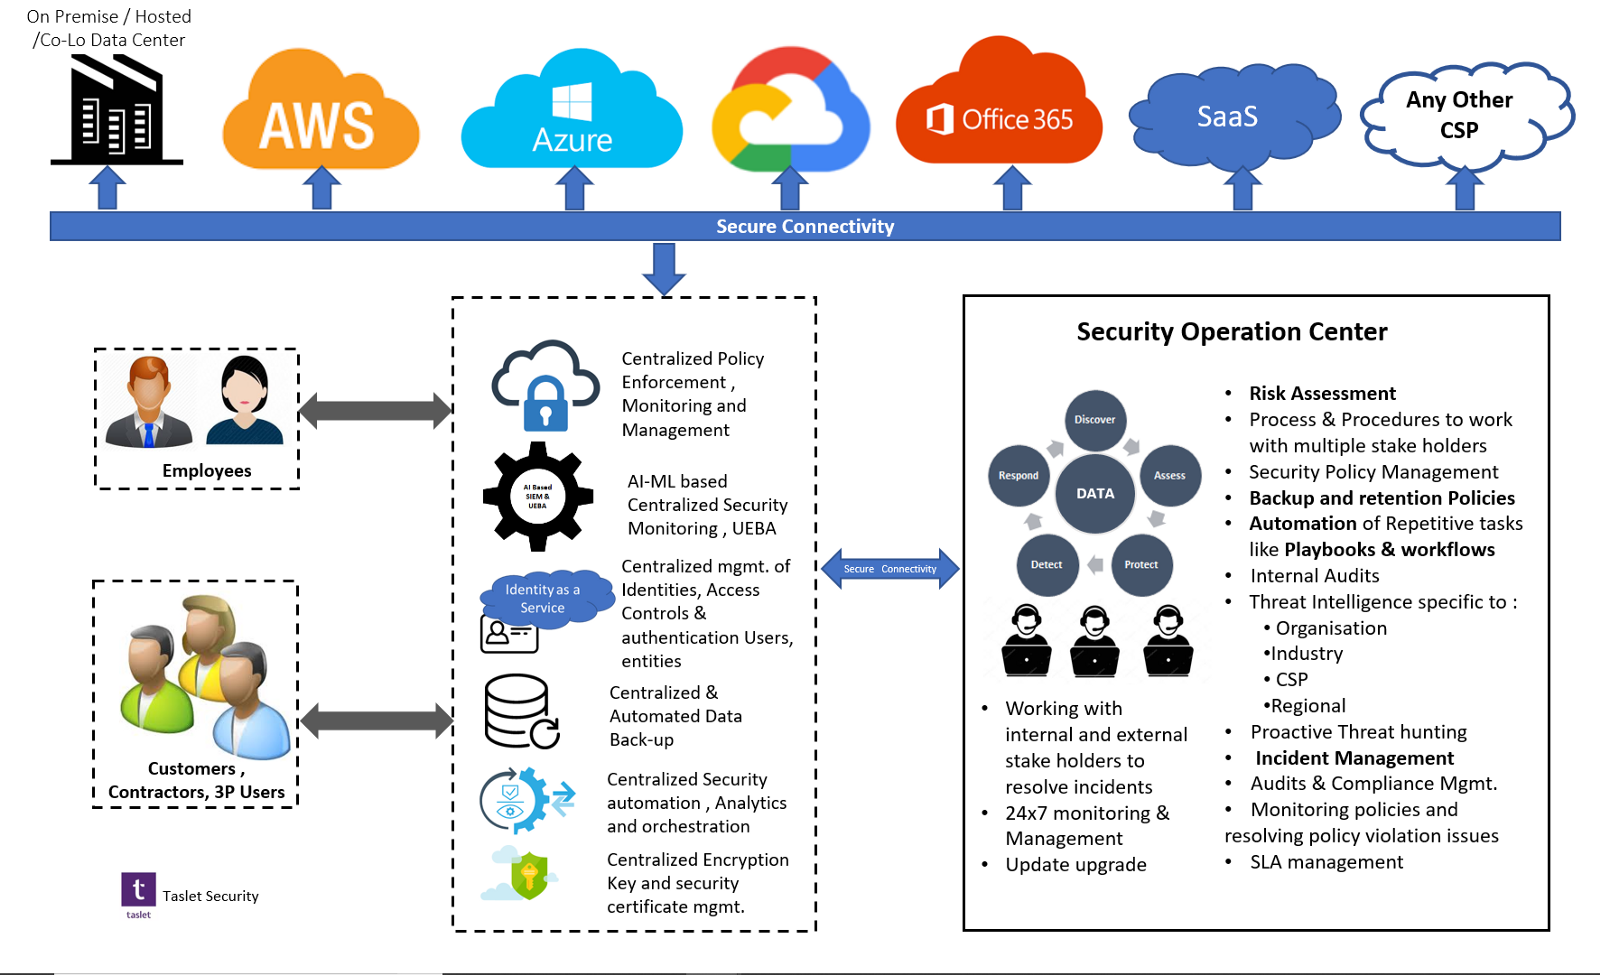 Cyber Security Framework For Multi Cloud Environment Data Definitions Irrespective Of Where The Workload Application Is Deployed Policies Will Be Maintained As Per Policy And This Can Achieved By